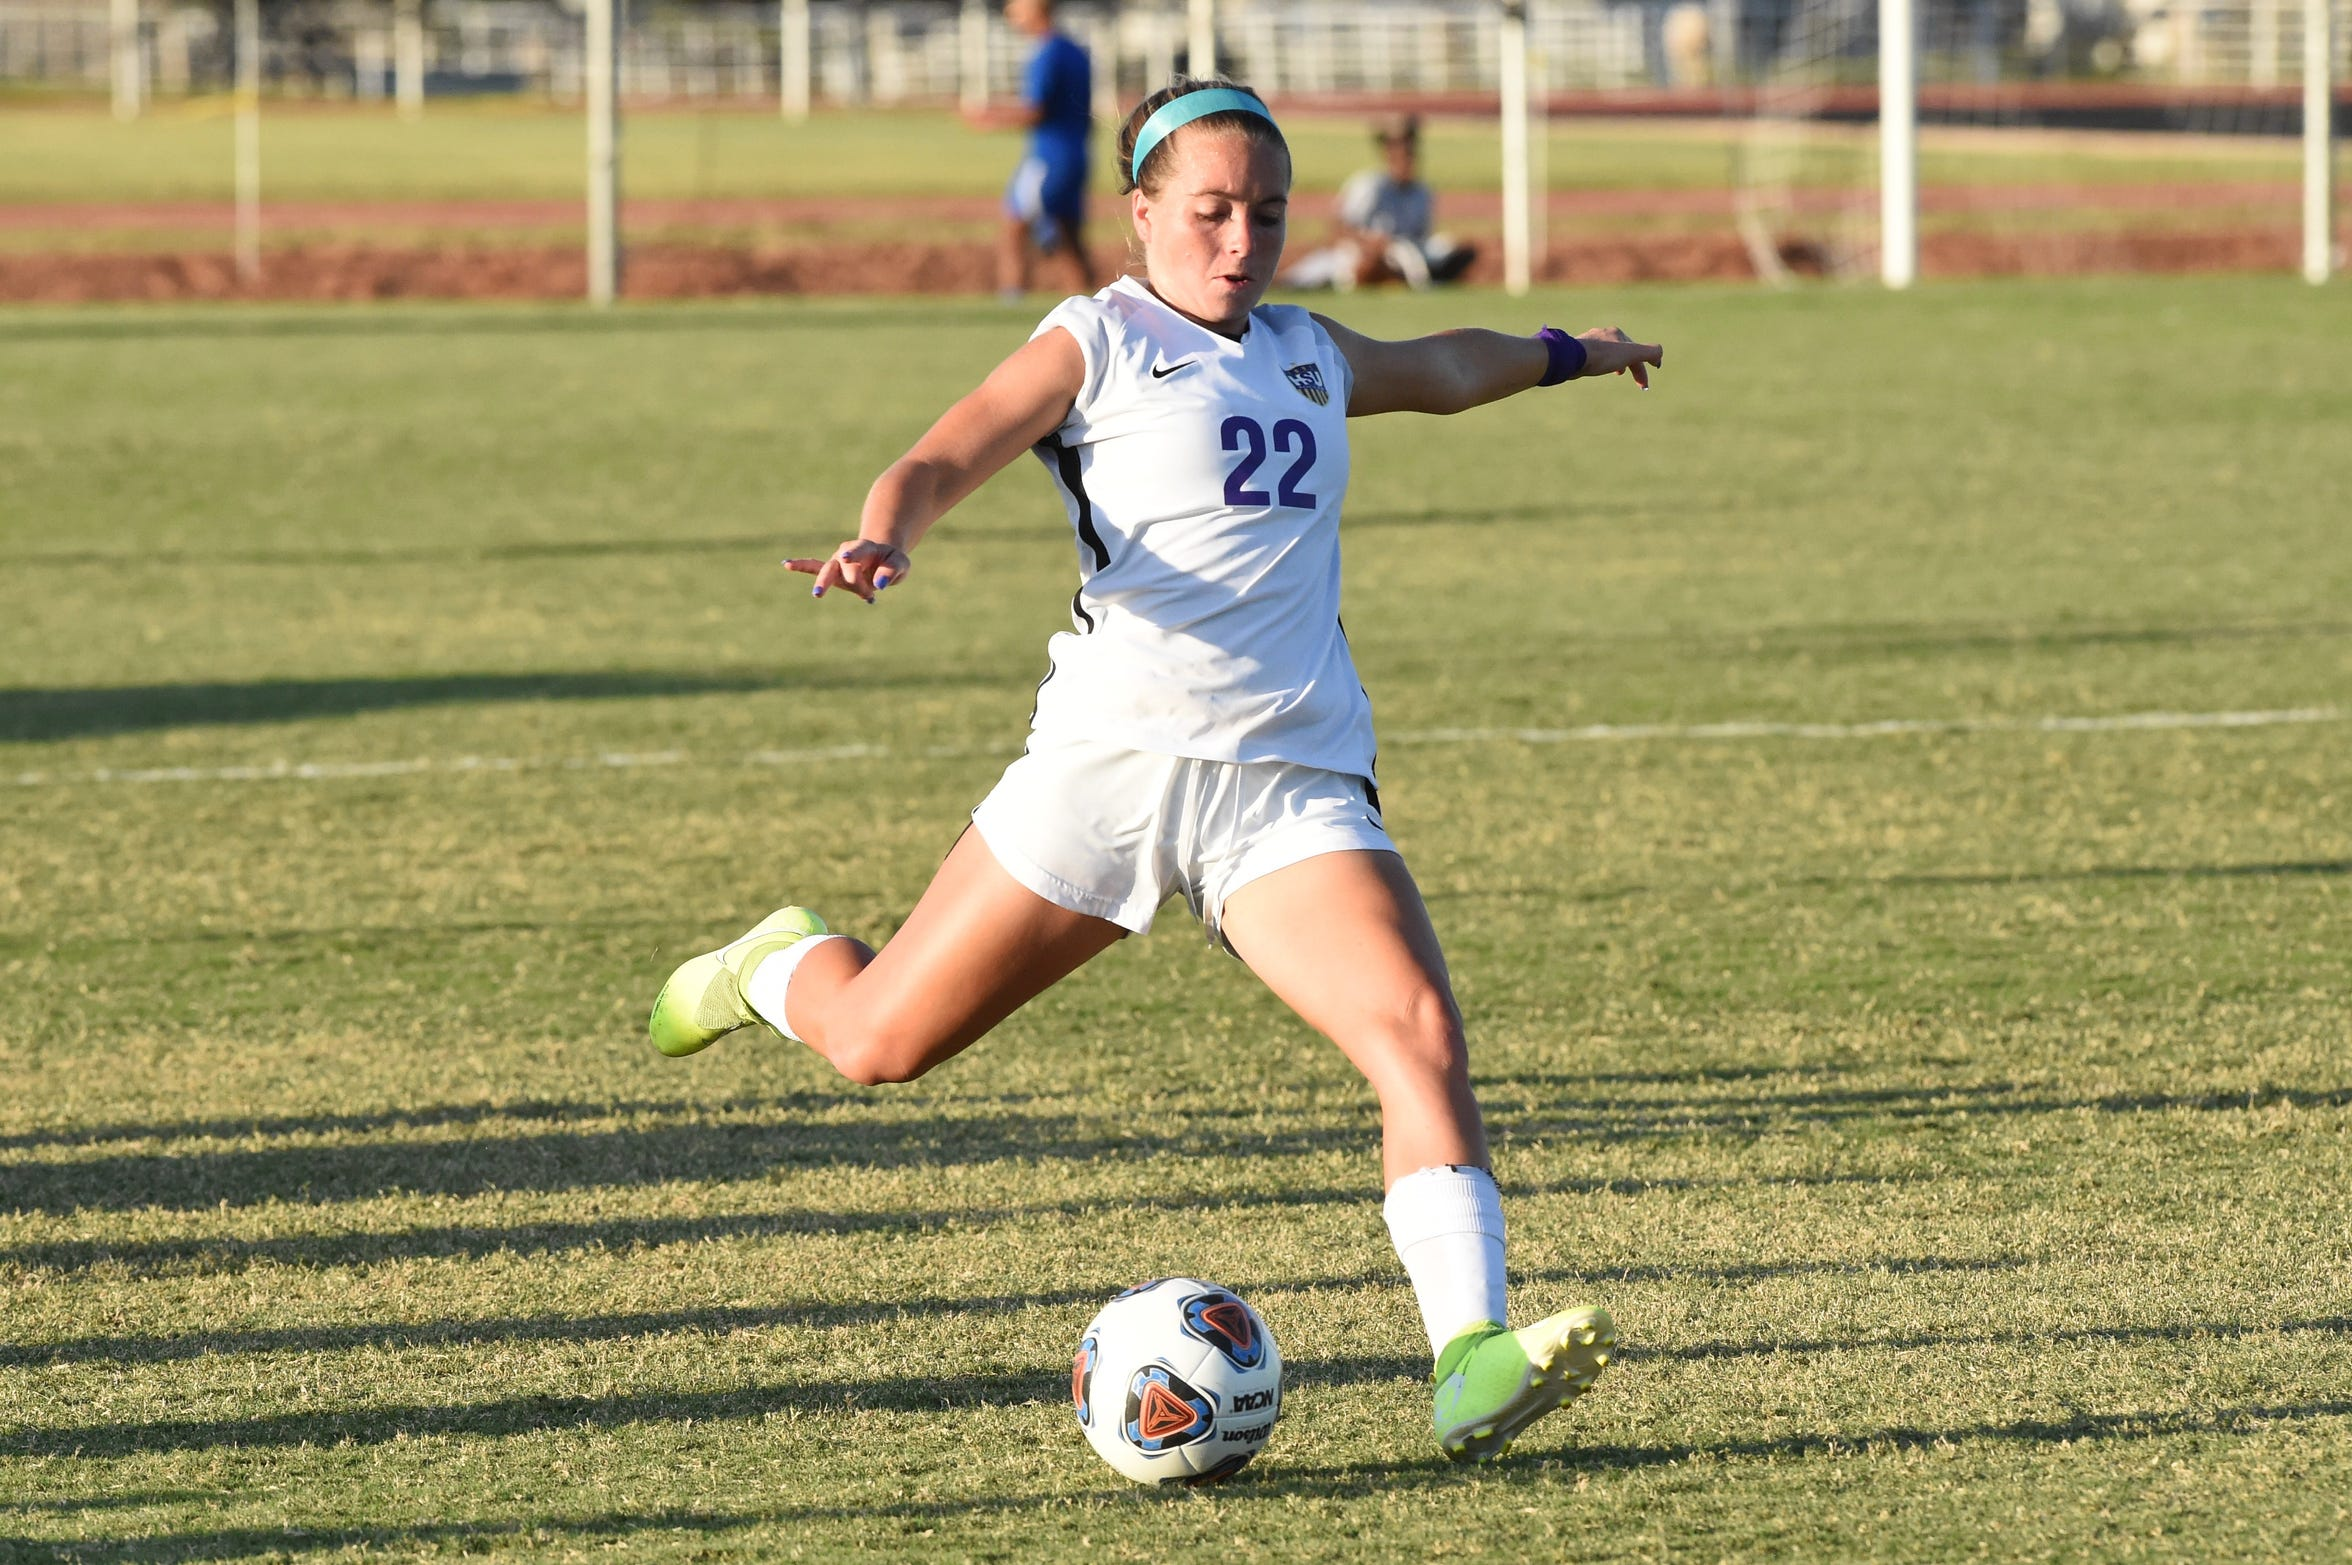 HSU's Kendell Groom (22) delivers a long pass against Louisiana College at the HSU Soccer Complex on Thursday, Sept. 26, 2019. The Cowgirls won 10-0.